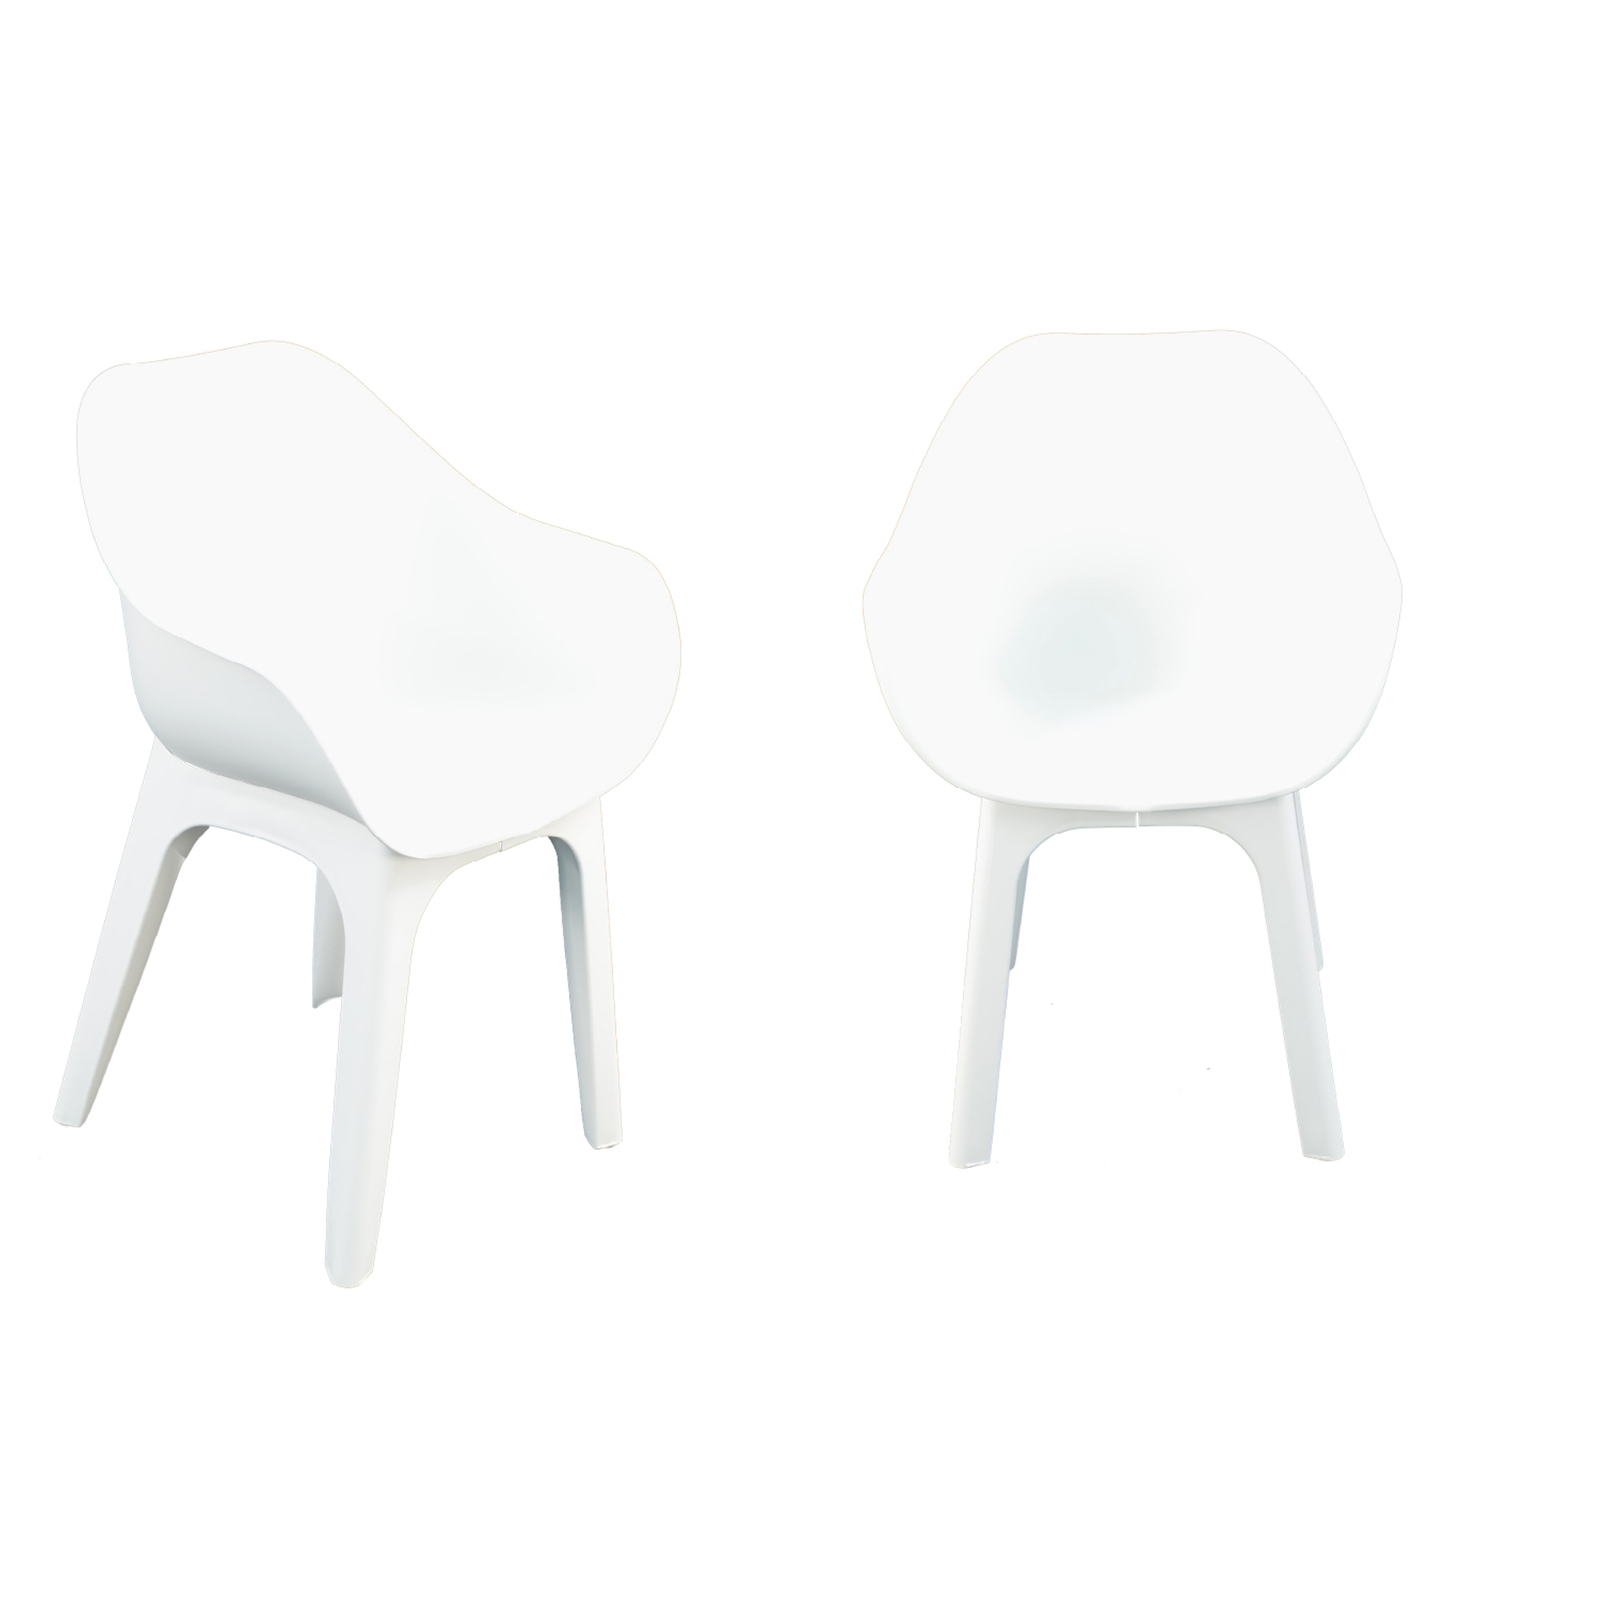 Trabella Ghibli Chair Pack Of 2 in White